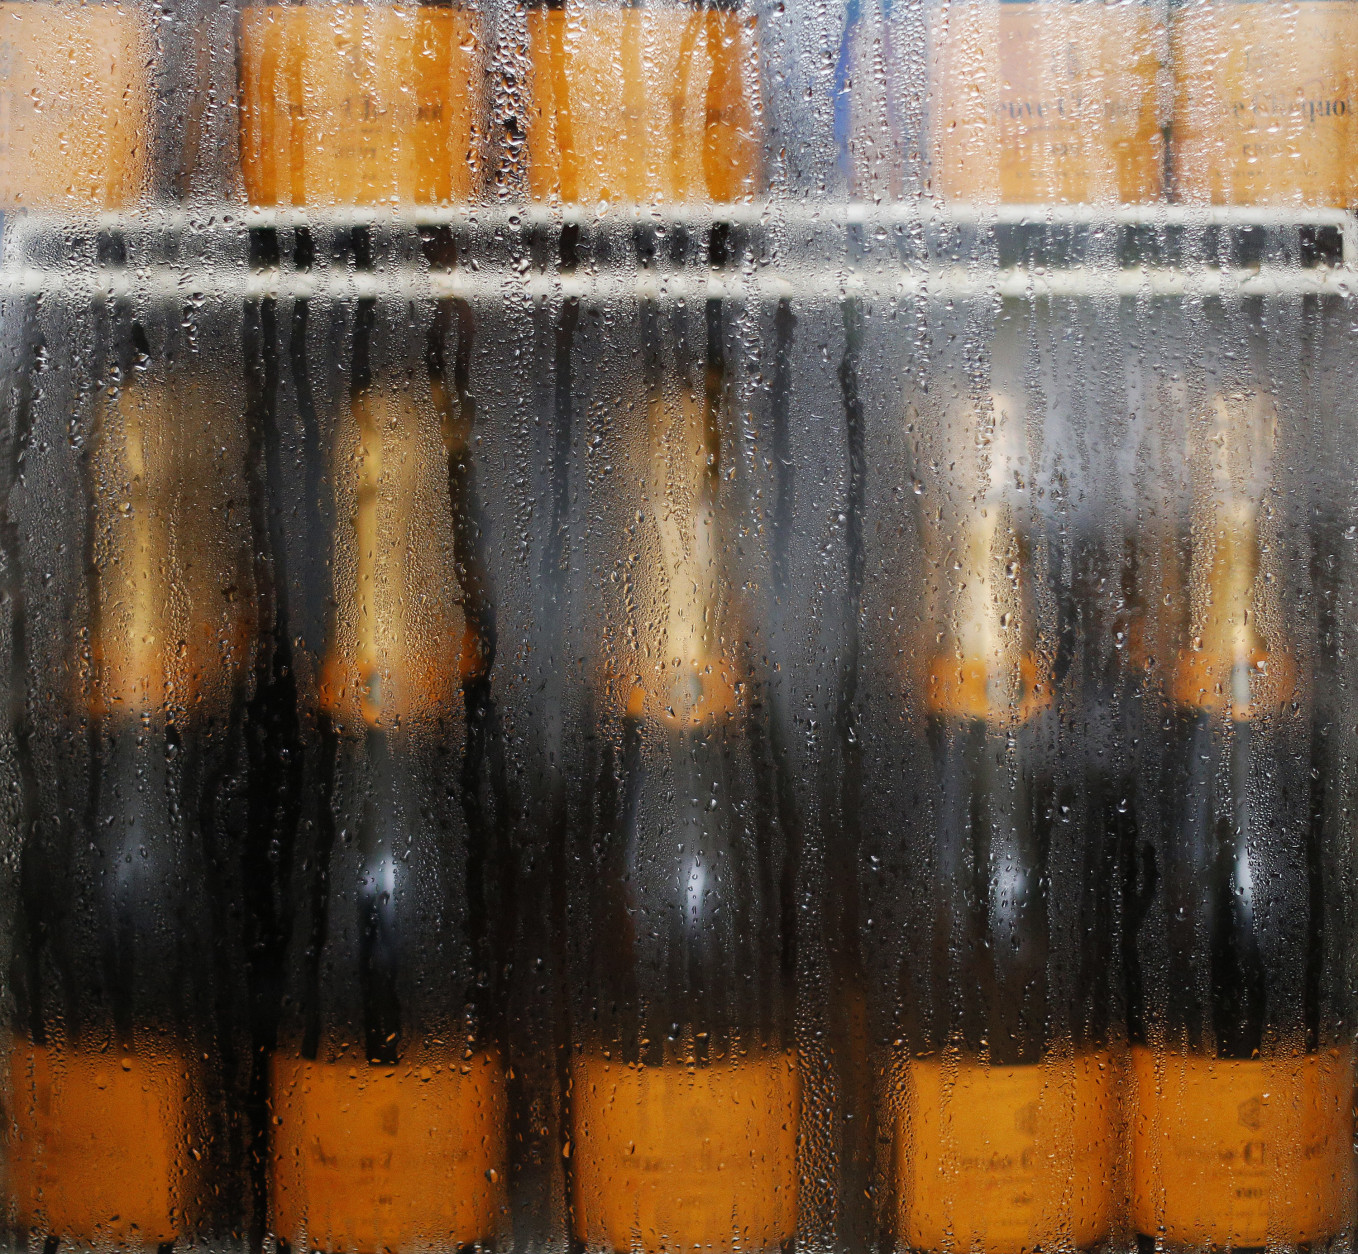 YORK, ENGLAND - AUGUST 18: Champagne cools in the fridge as the champagne garden prepares for Ladies Day at York racecourse on August 18, 2016 in York, England. (Photo by Alan Crowhurst/Getty Images)